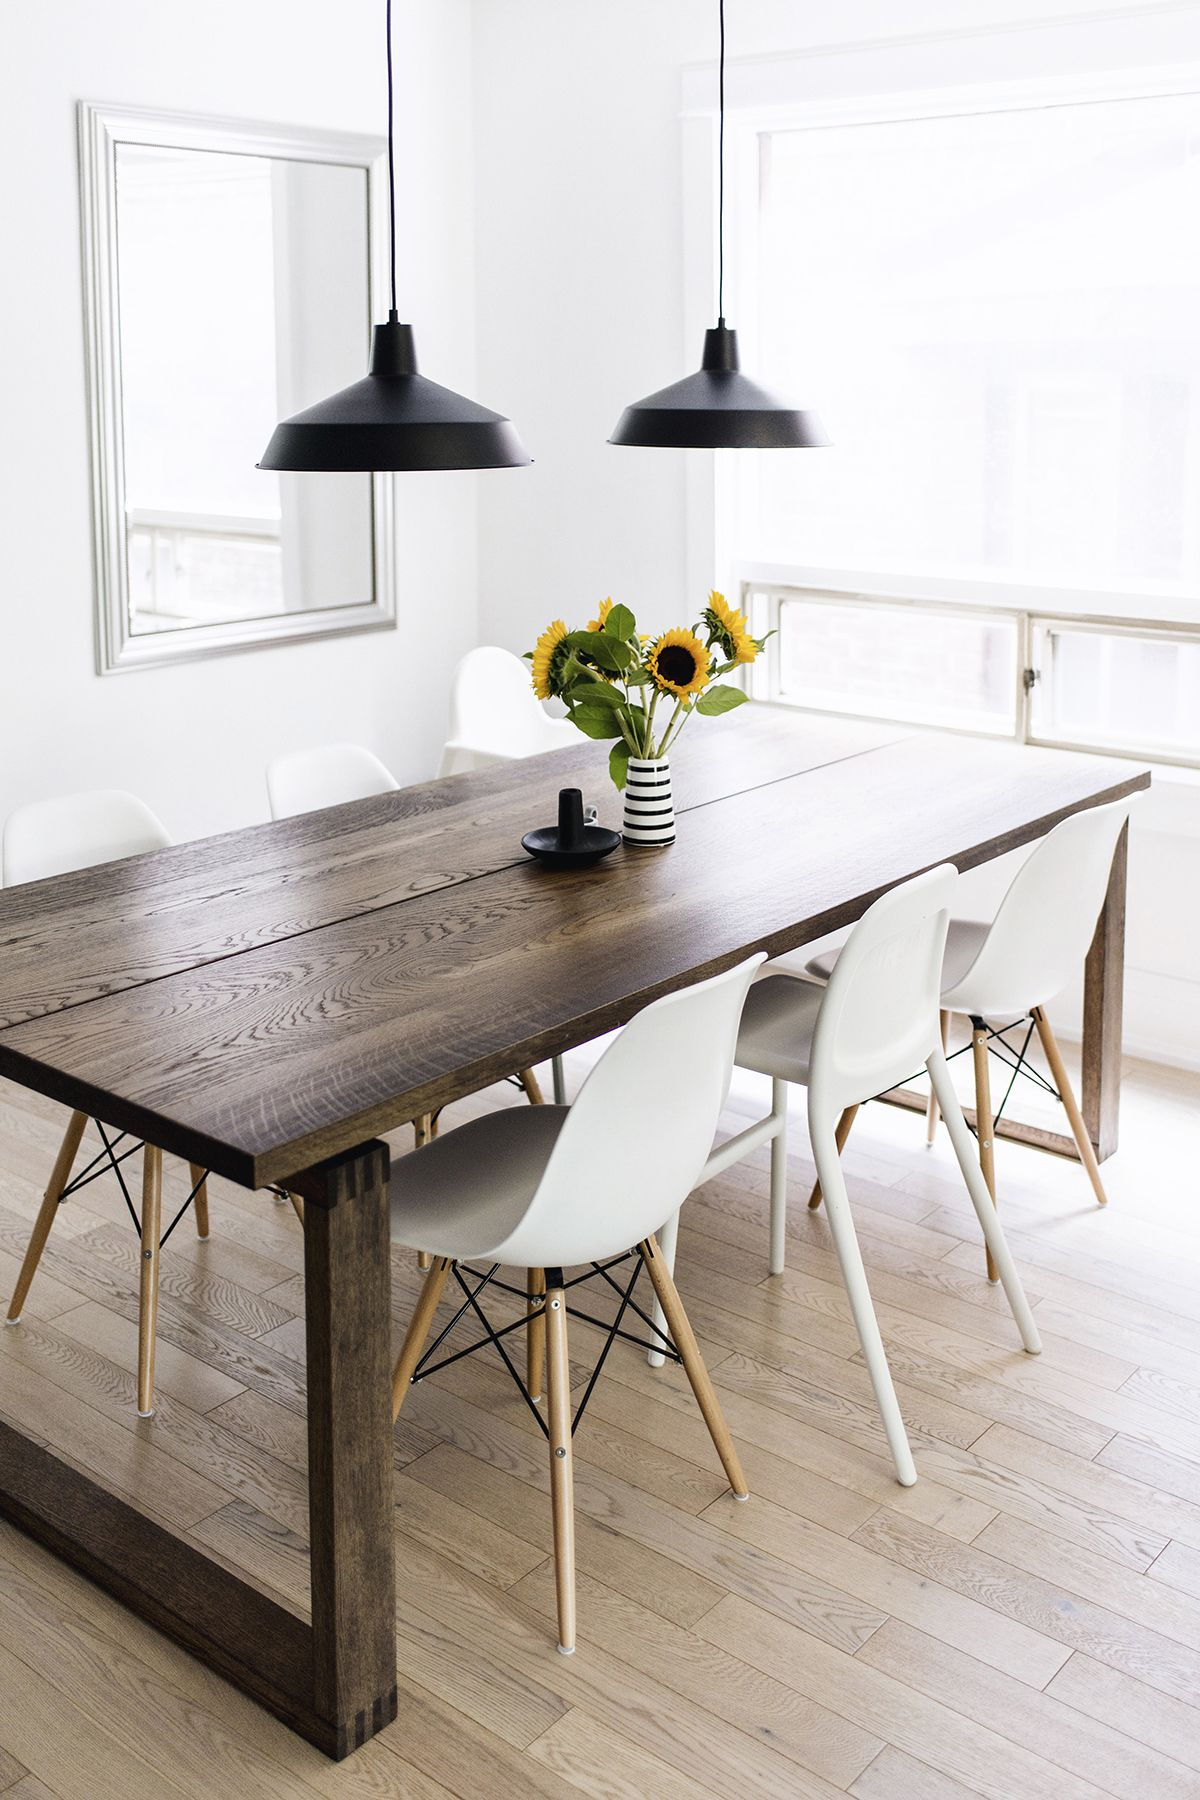 Scandinavianinspired Dining Room  Mörbylånga Table Eames Chairs Inspiration Cheap Dining Room Chairs Design Ideas